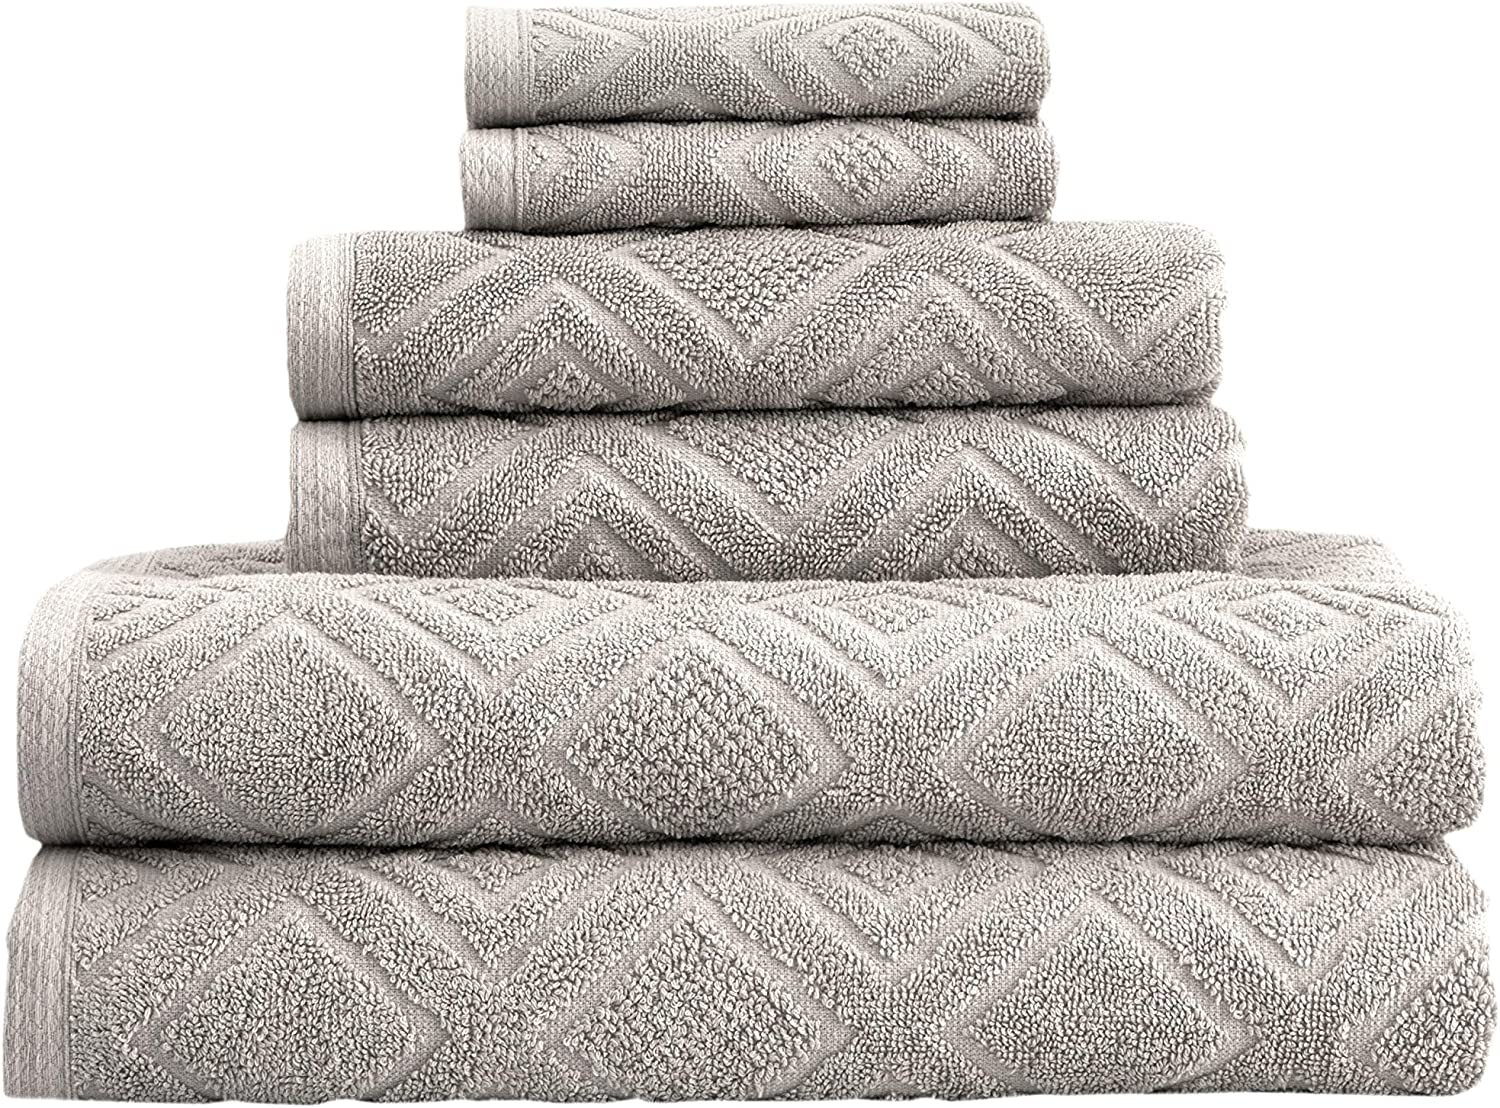 Classic Turkish Towels 6 Piece Cotton Bath Towel Set - Luxury Soft and Thick Bath Towels 600 GSM Made with 100% Turkish Cotton (Stone)